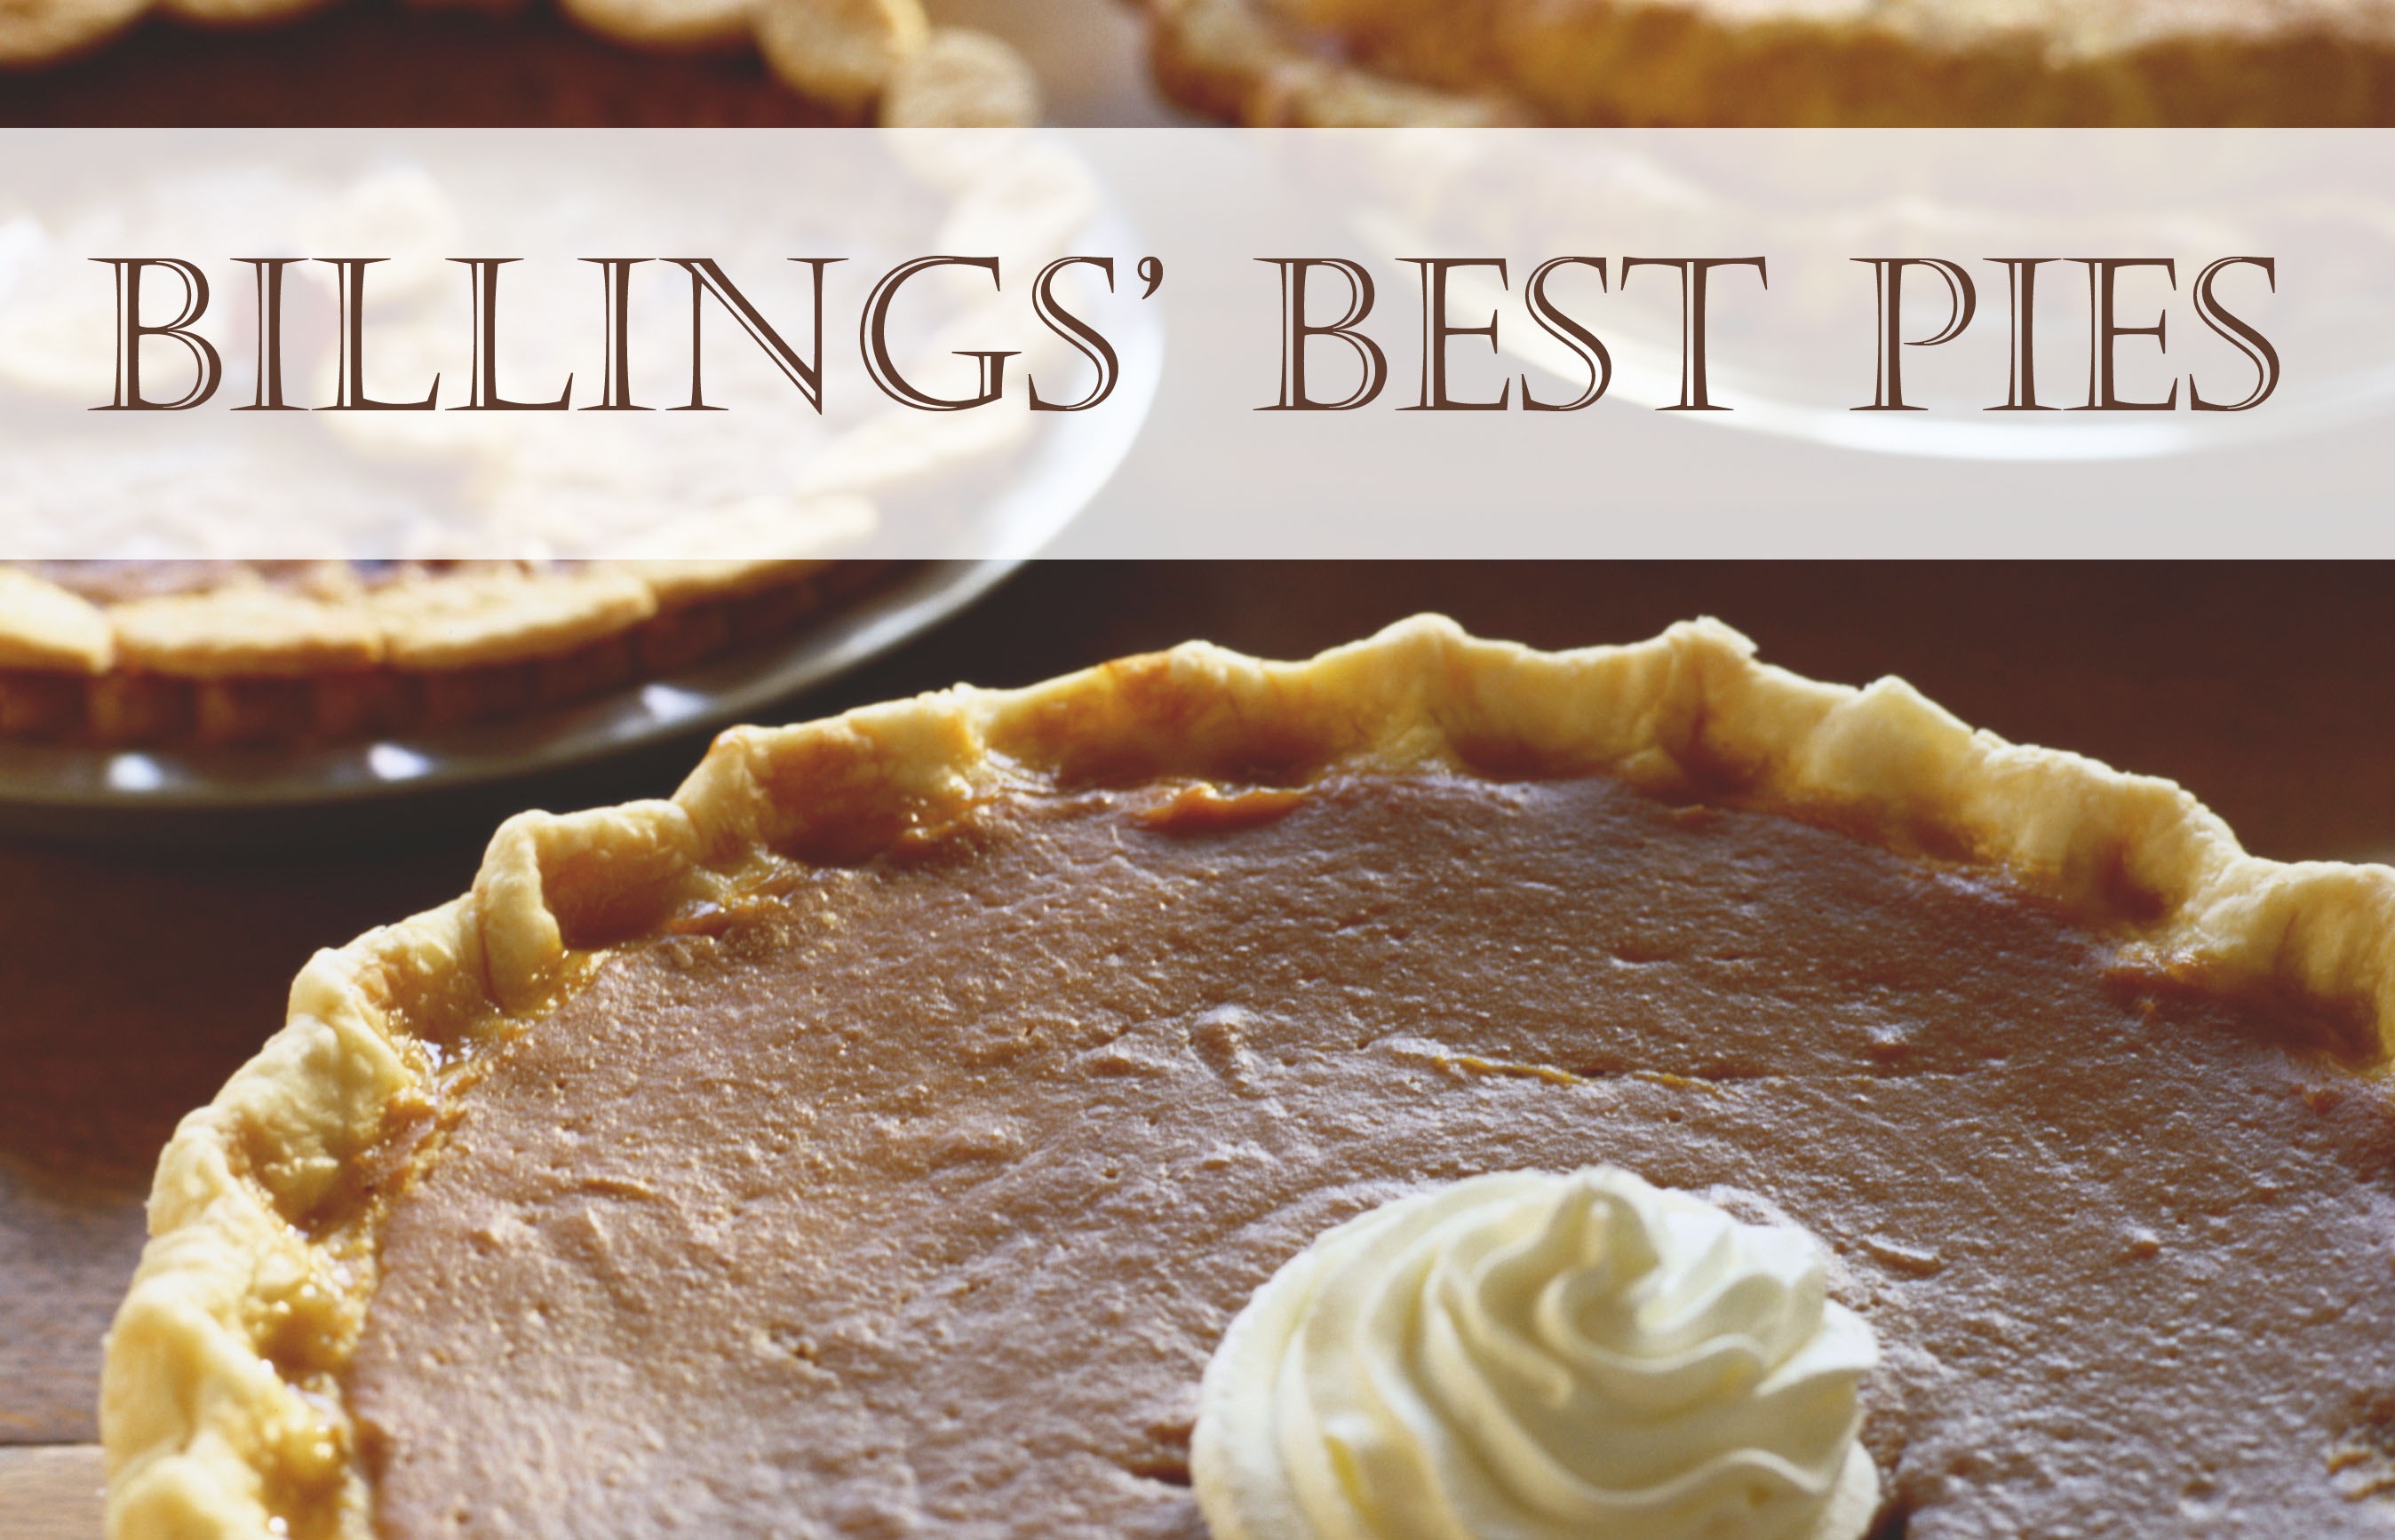 Where to get Billings' best pies